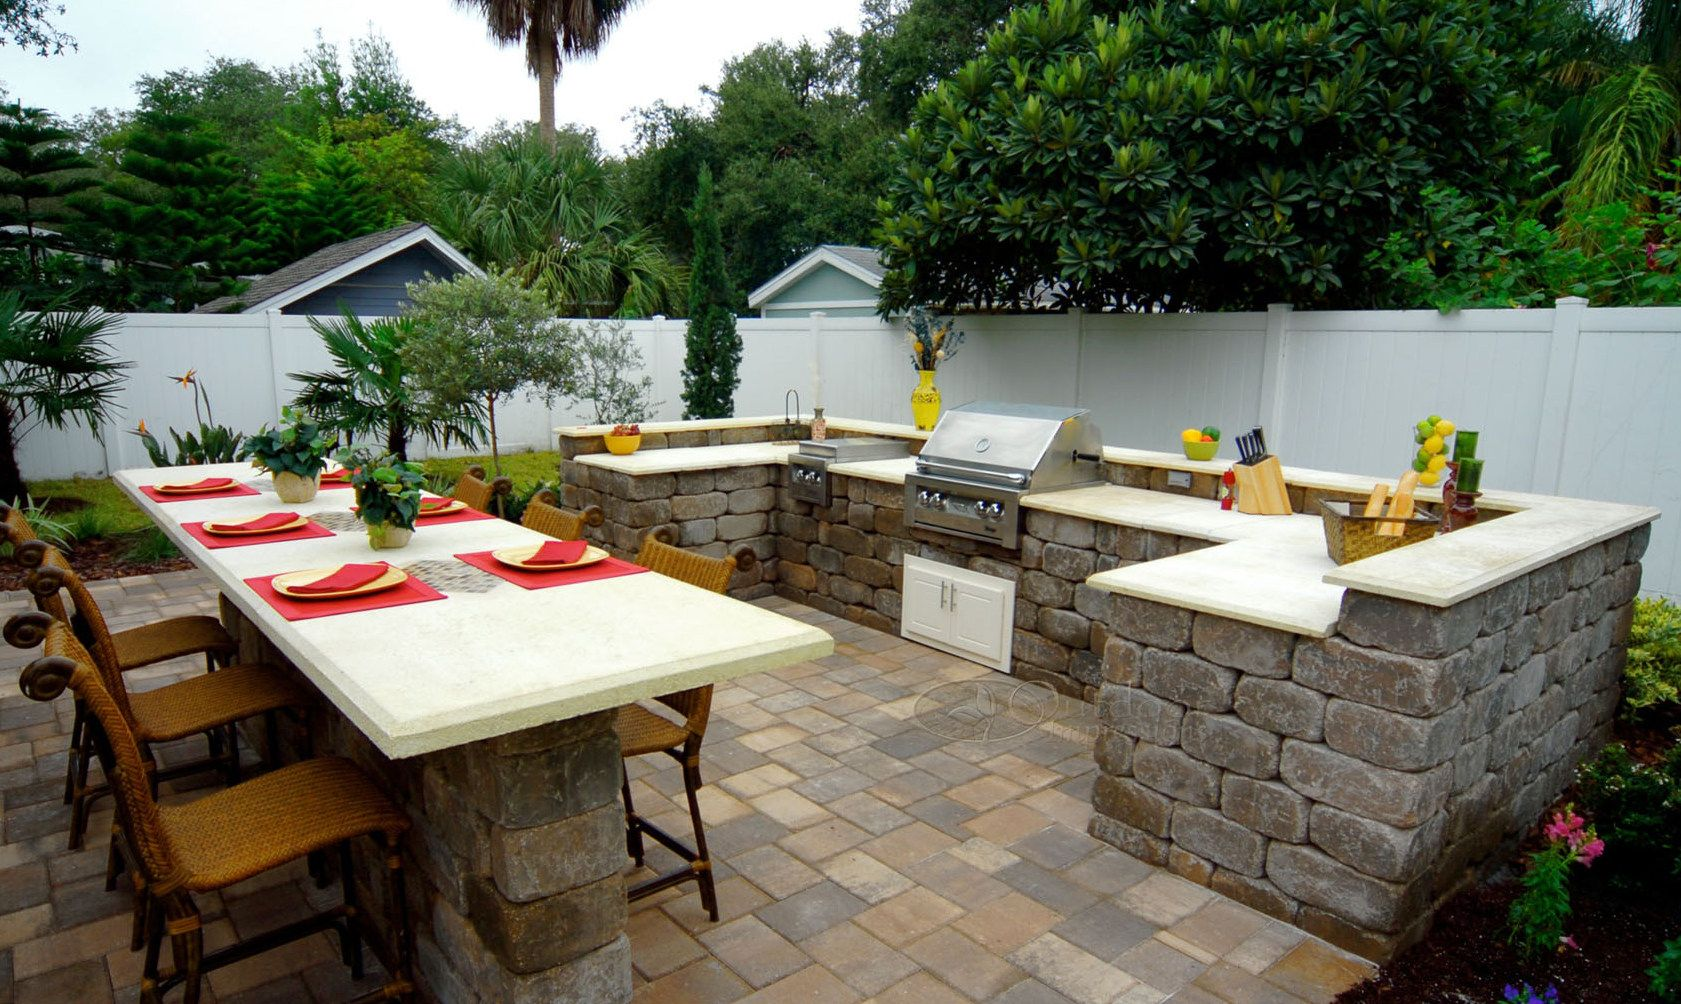 Tumbled Keystone Stonegate Wall Block Outdoor Kitchen Shell With Granite Countertop We Used The Tre Outdoor Kitchen Outdoor Kitchen Countertops Yard Crashers